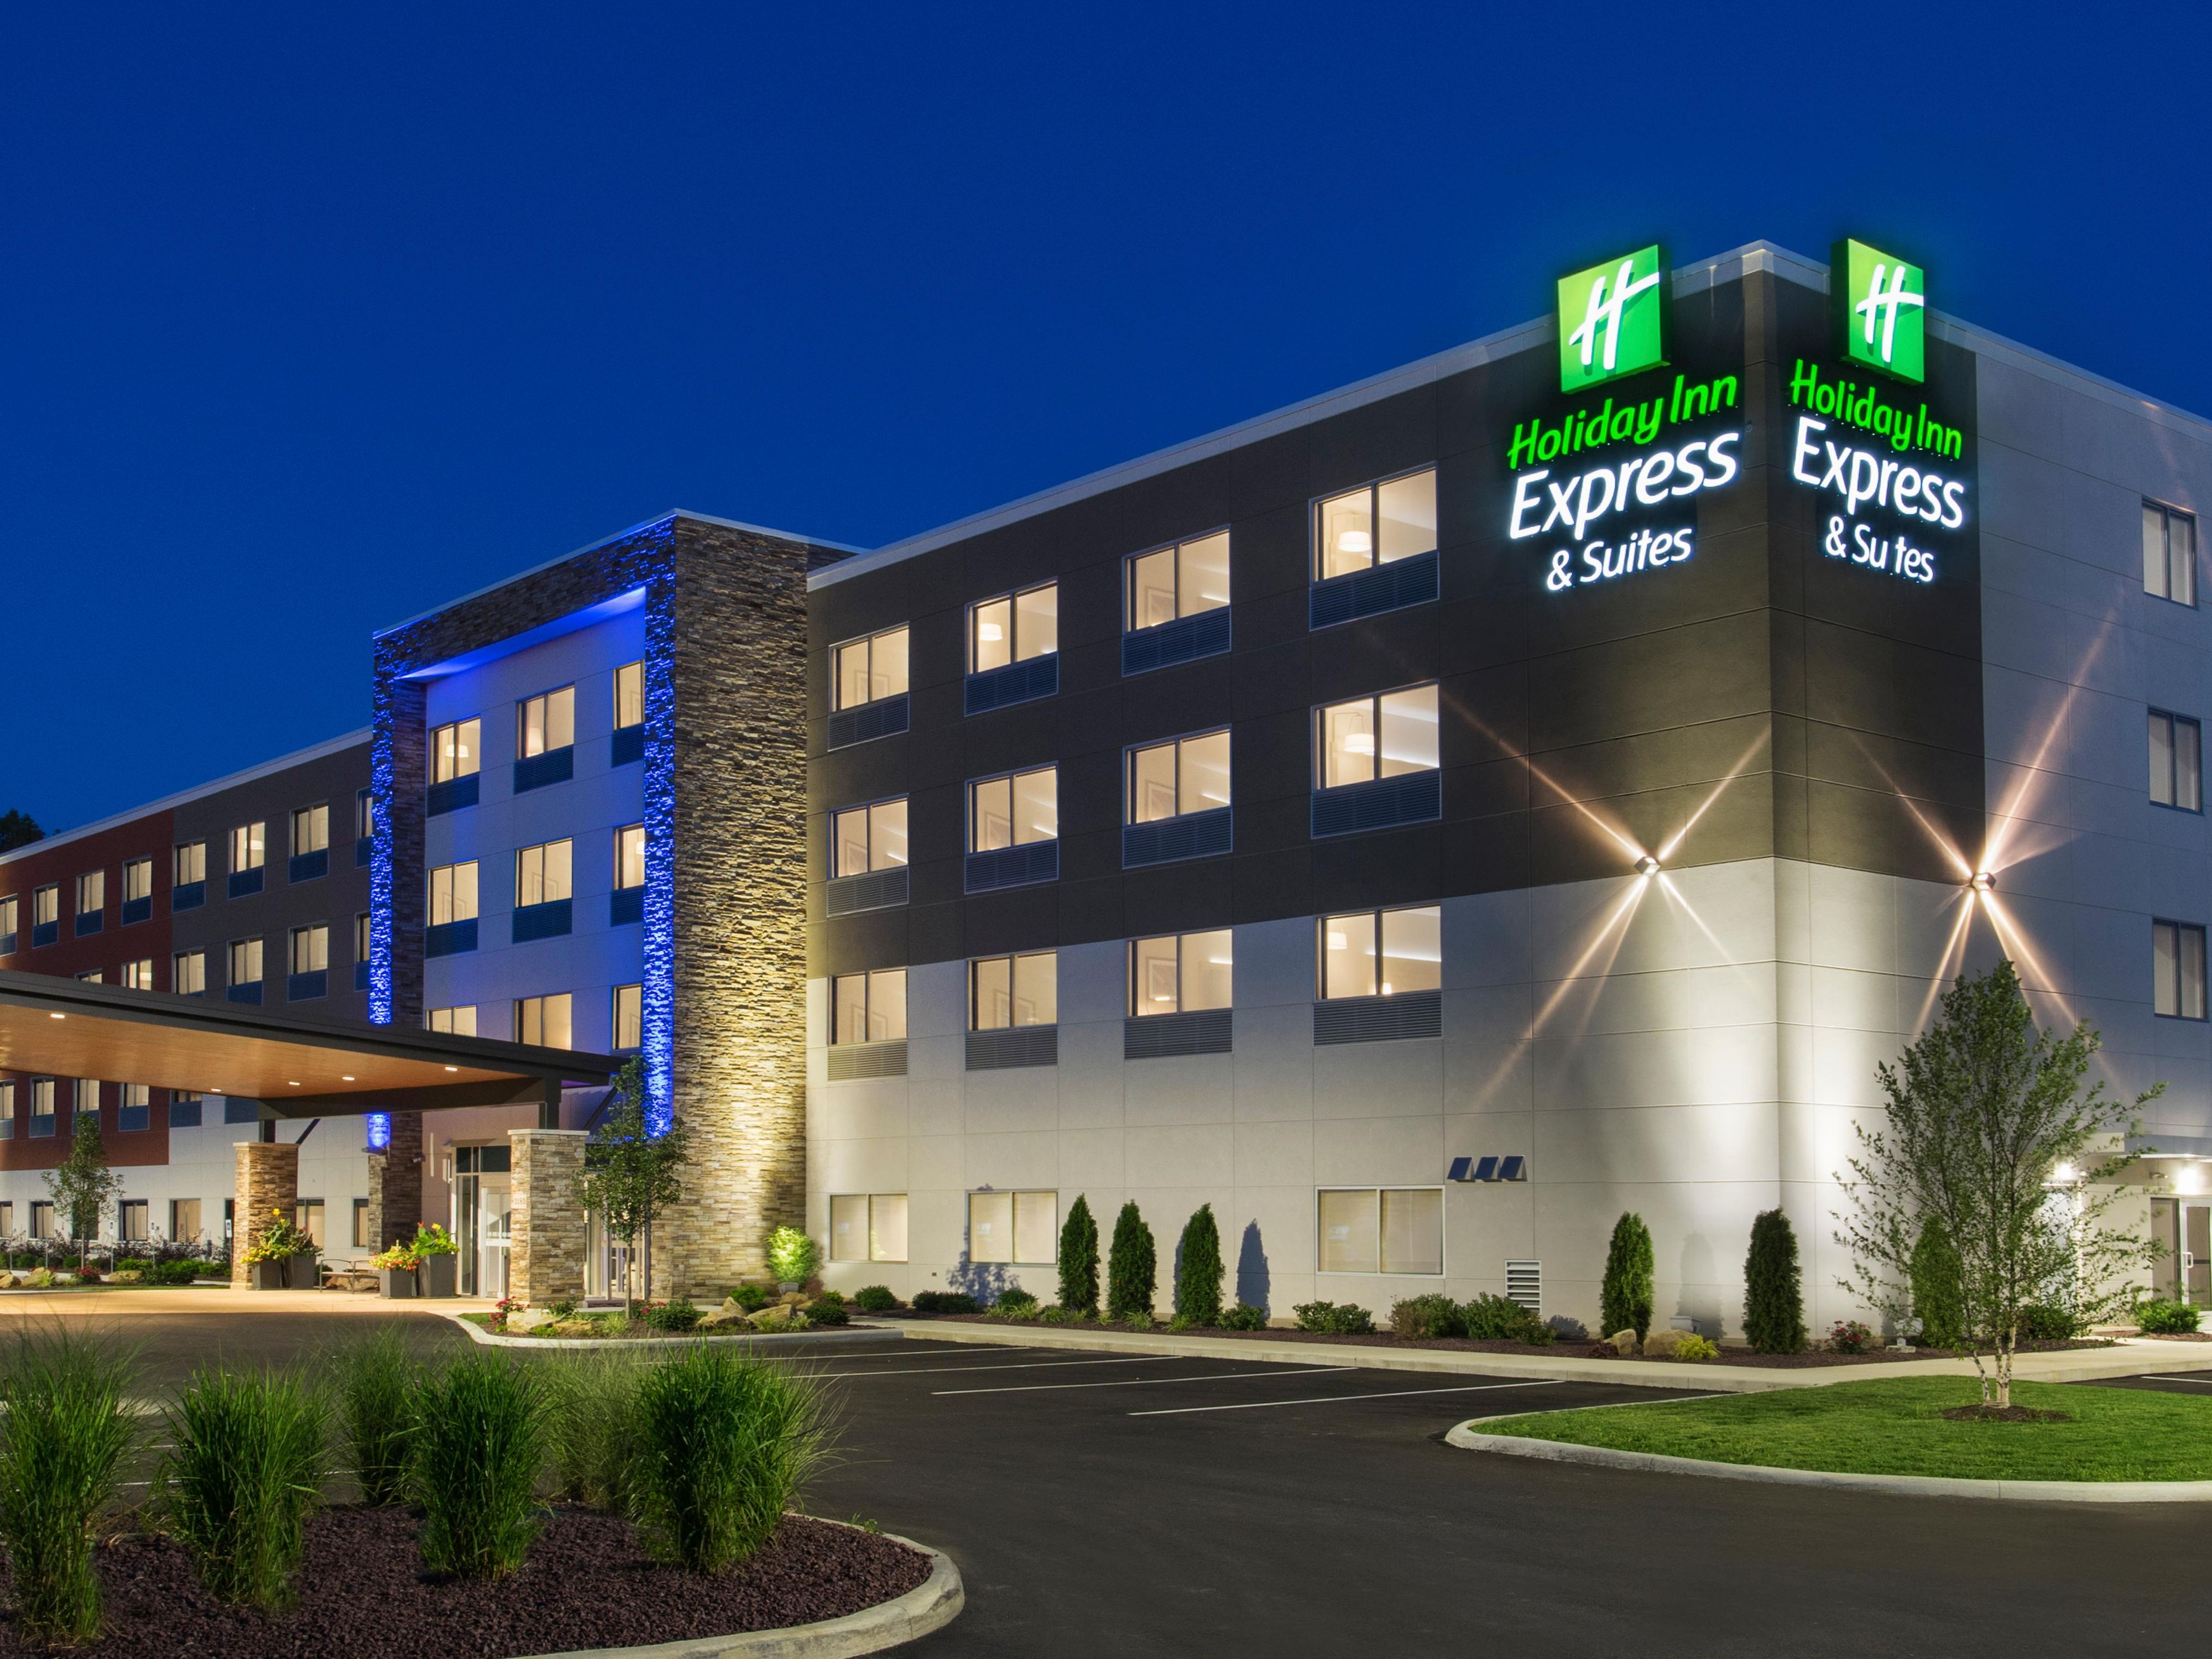 Hotels In Medina Ohio Holiday Inn Express Amp Suites